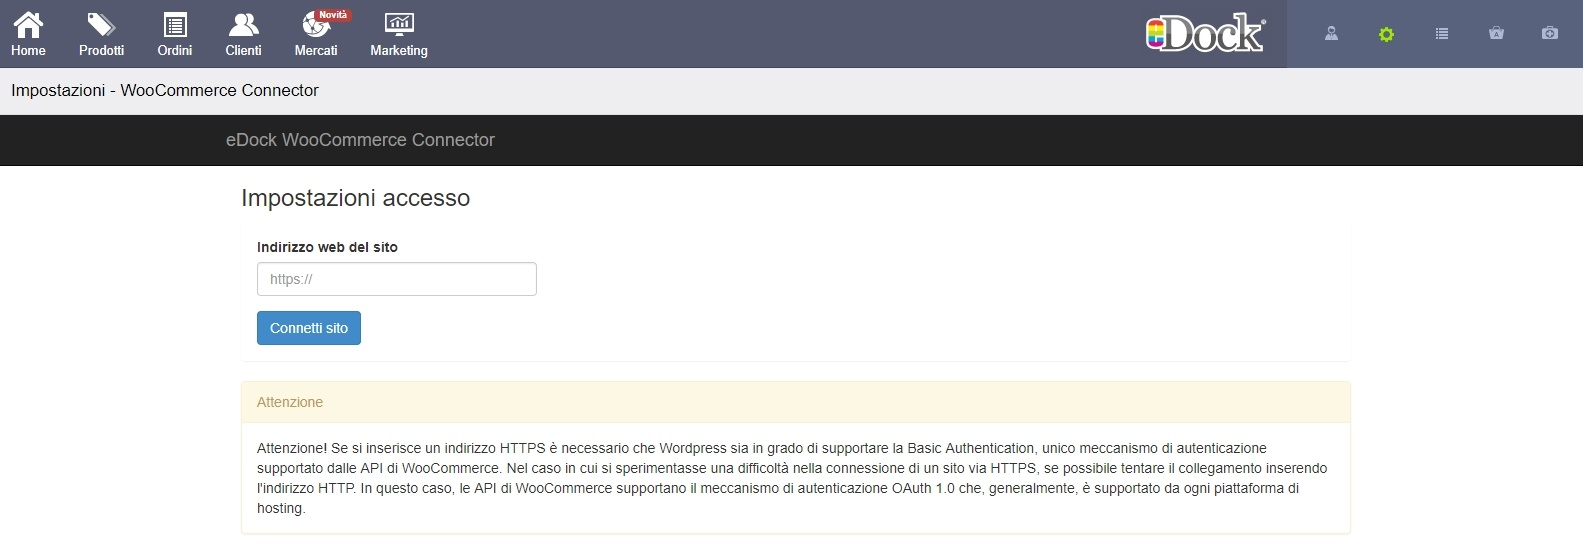 woocommerce-connector-1